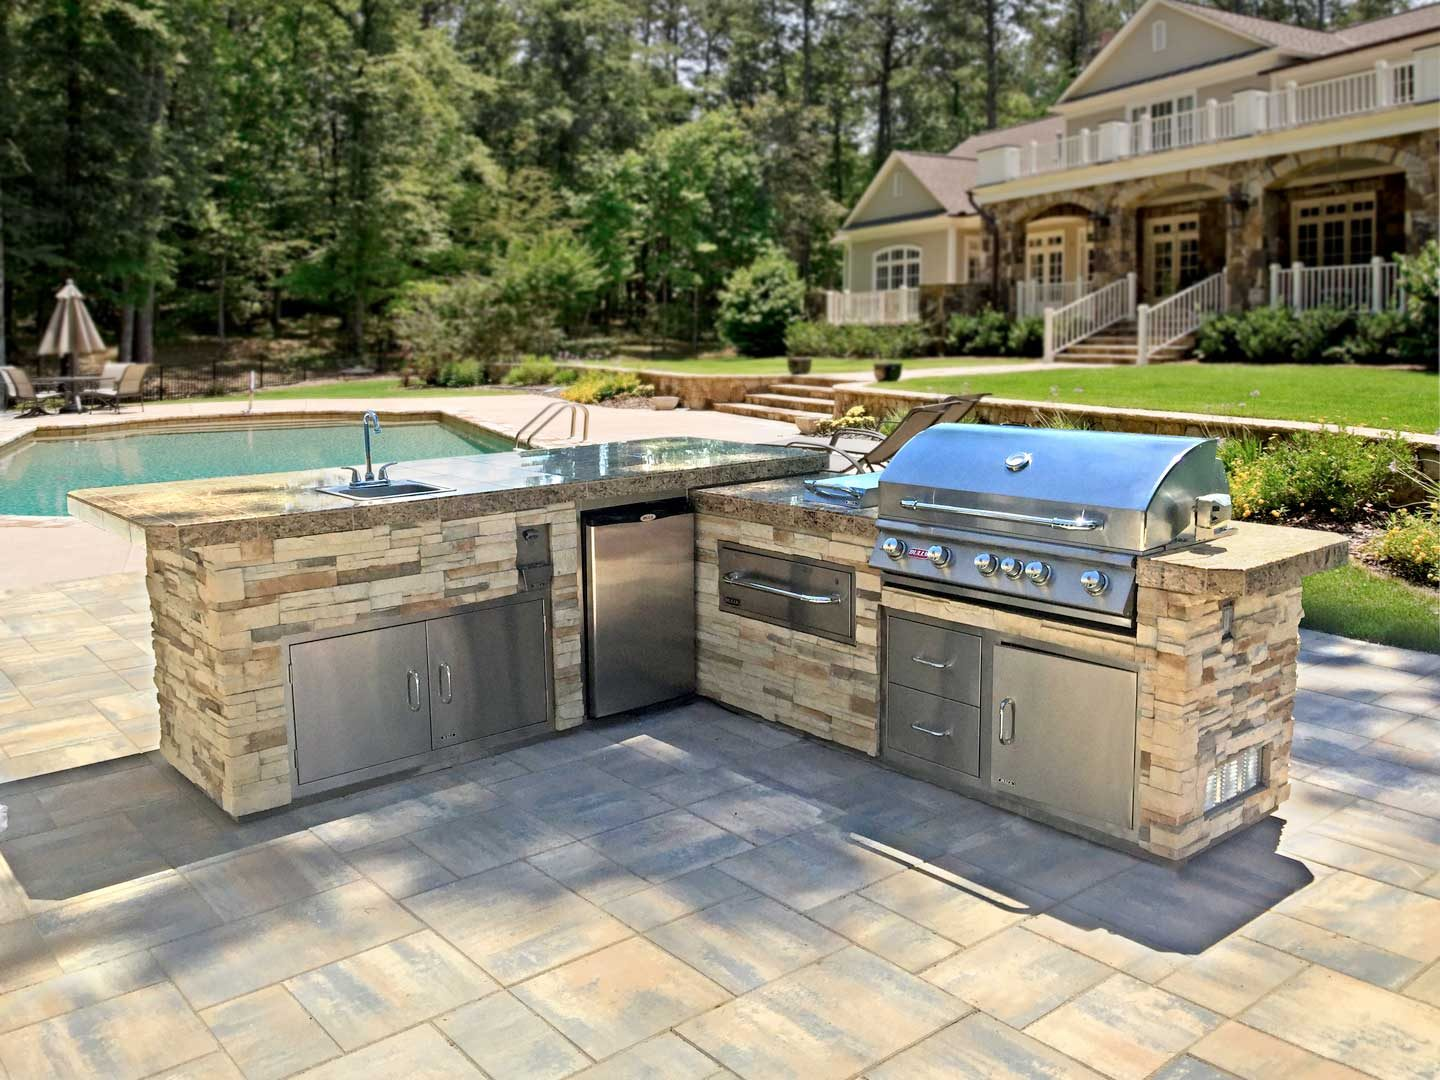 Custom-Outdoor-Kitchen-Island-with-Granite-Countertop-on-Patio